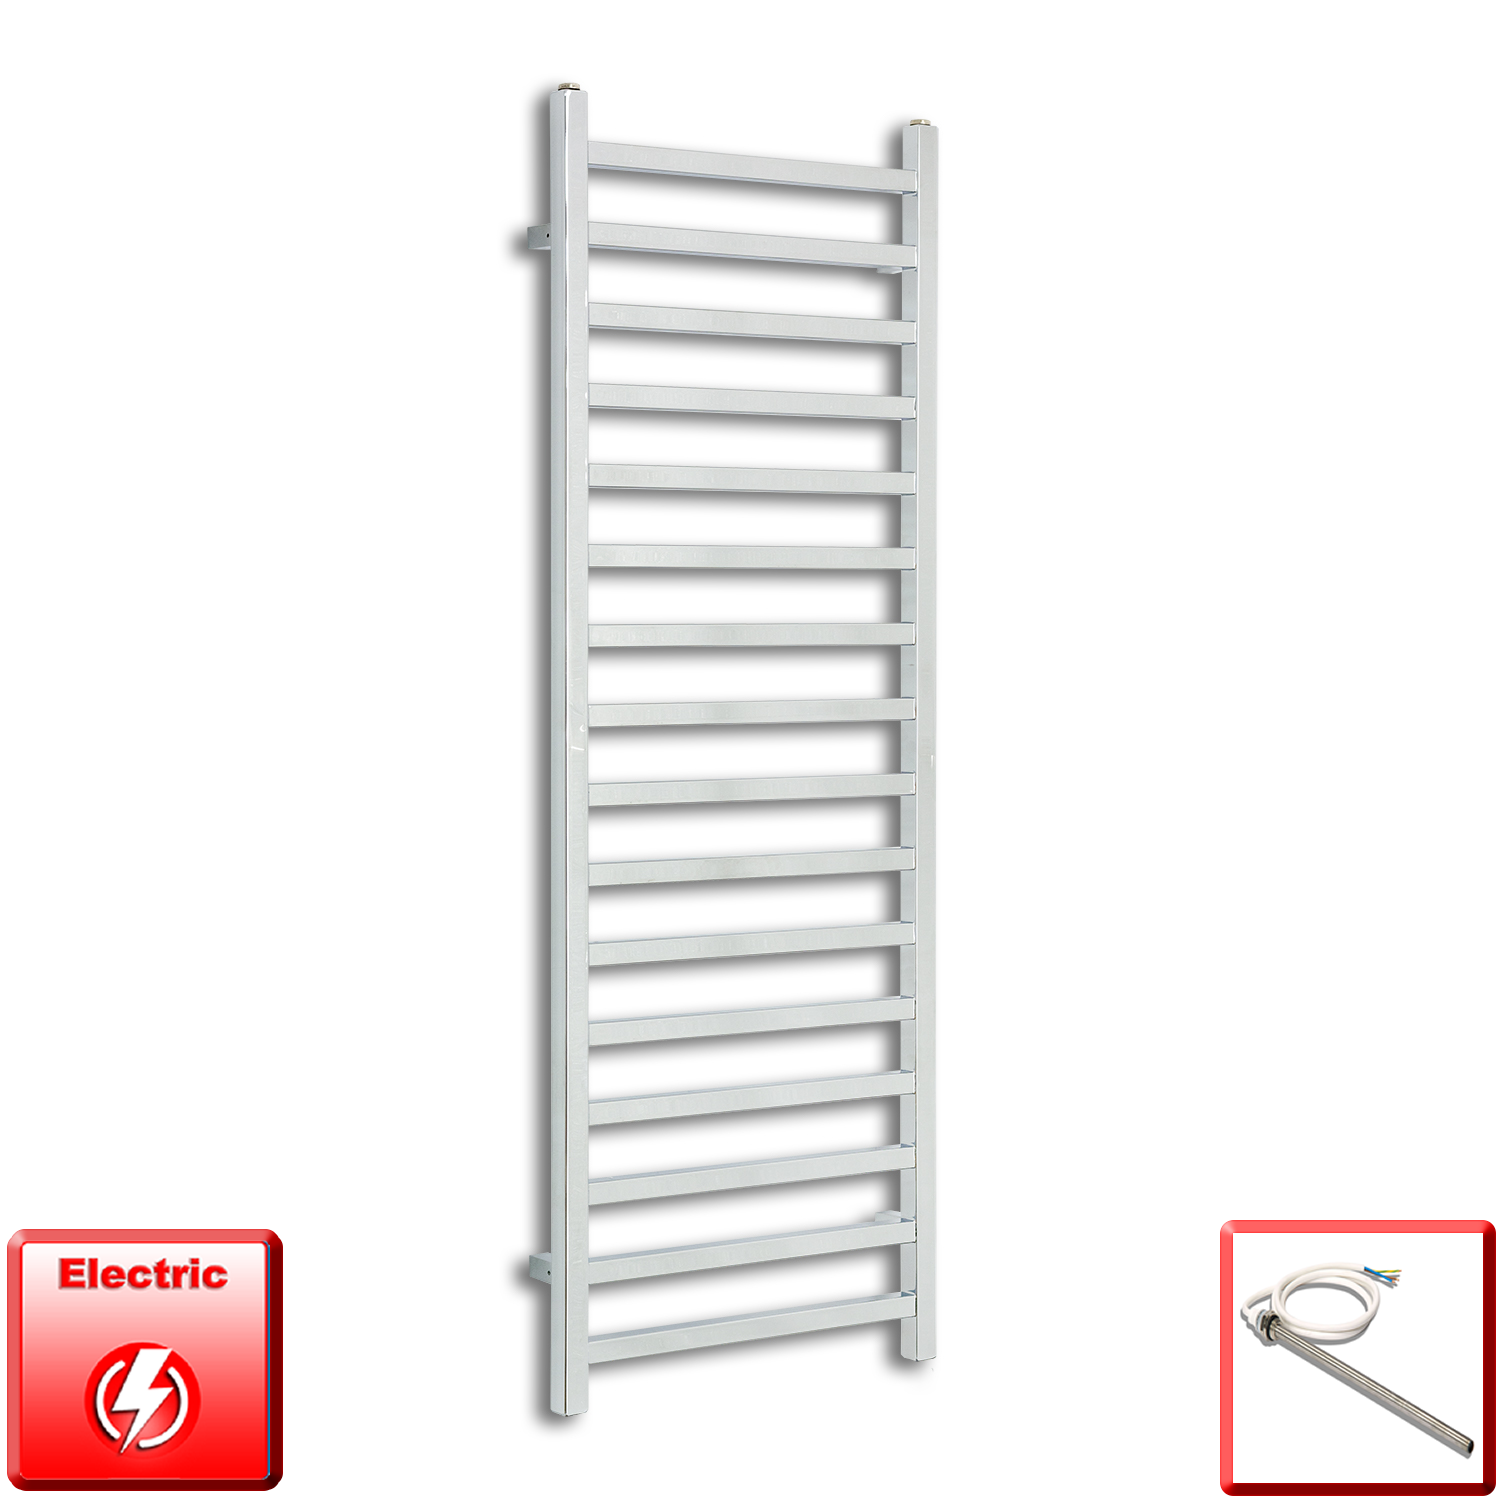 500mm Wide 1400mm High Pre-Filled Chrome Electric Towel Rail Radiator With Single Heat Element